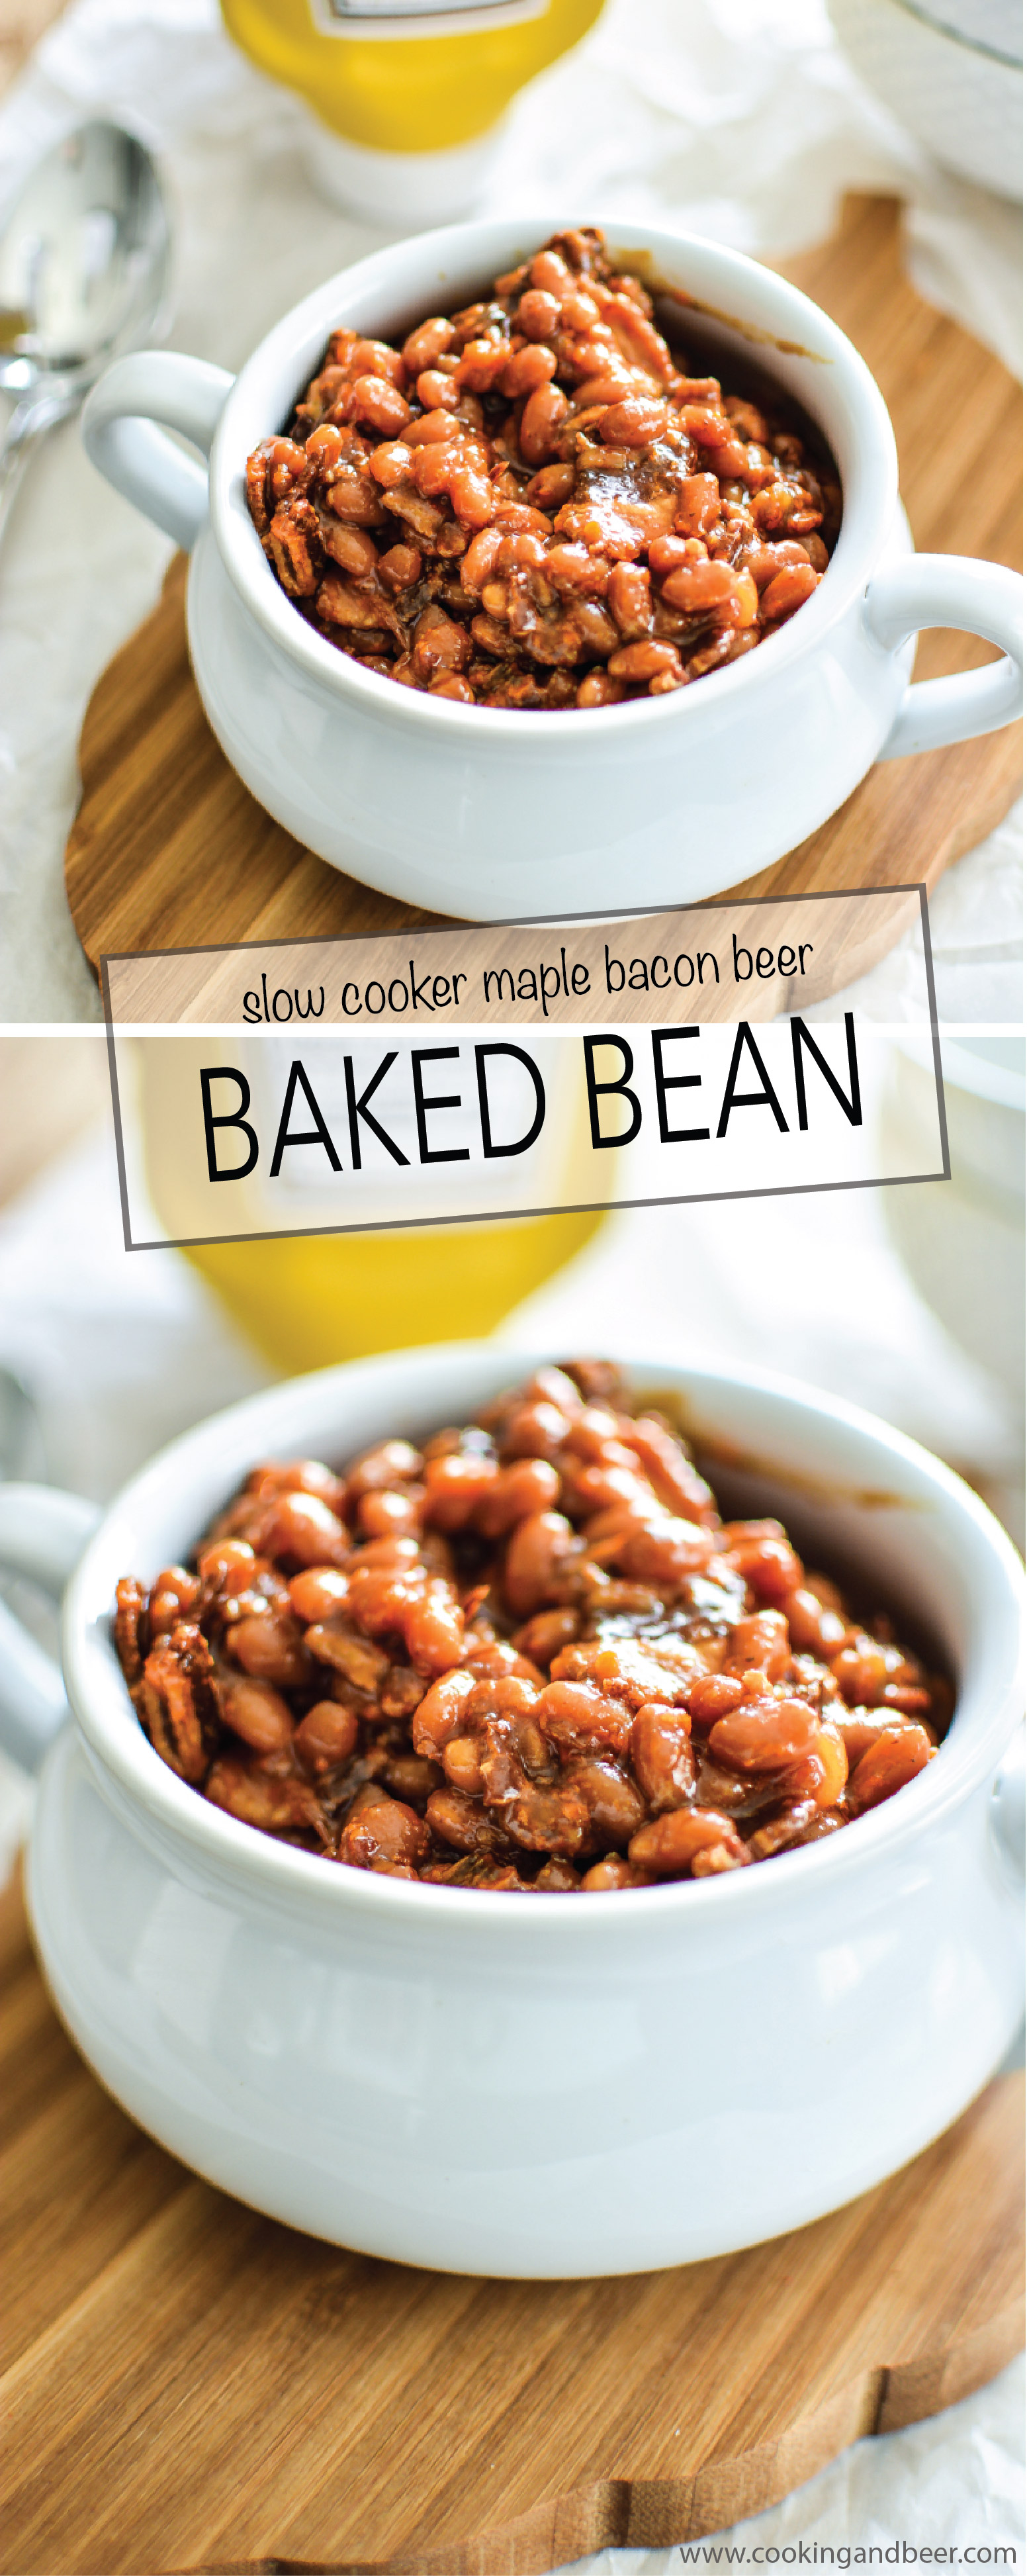 Slow Cooker Brown Sugar and Mustard Baked Beans with Bacon Recipe! | www.cookingandbeer.com